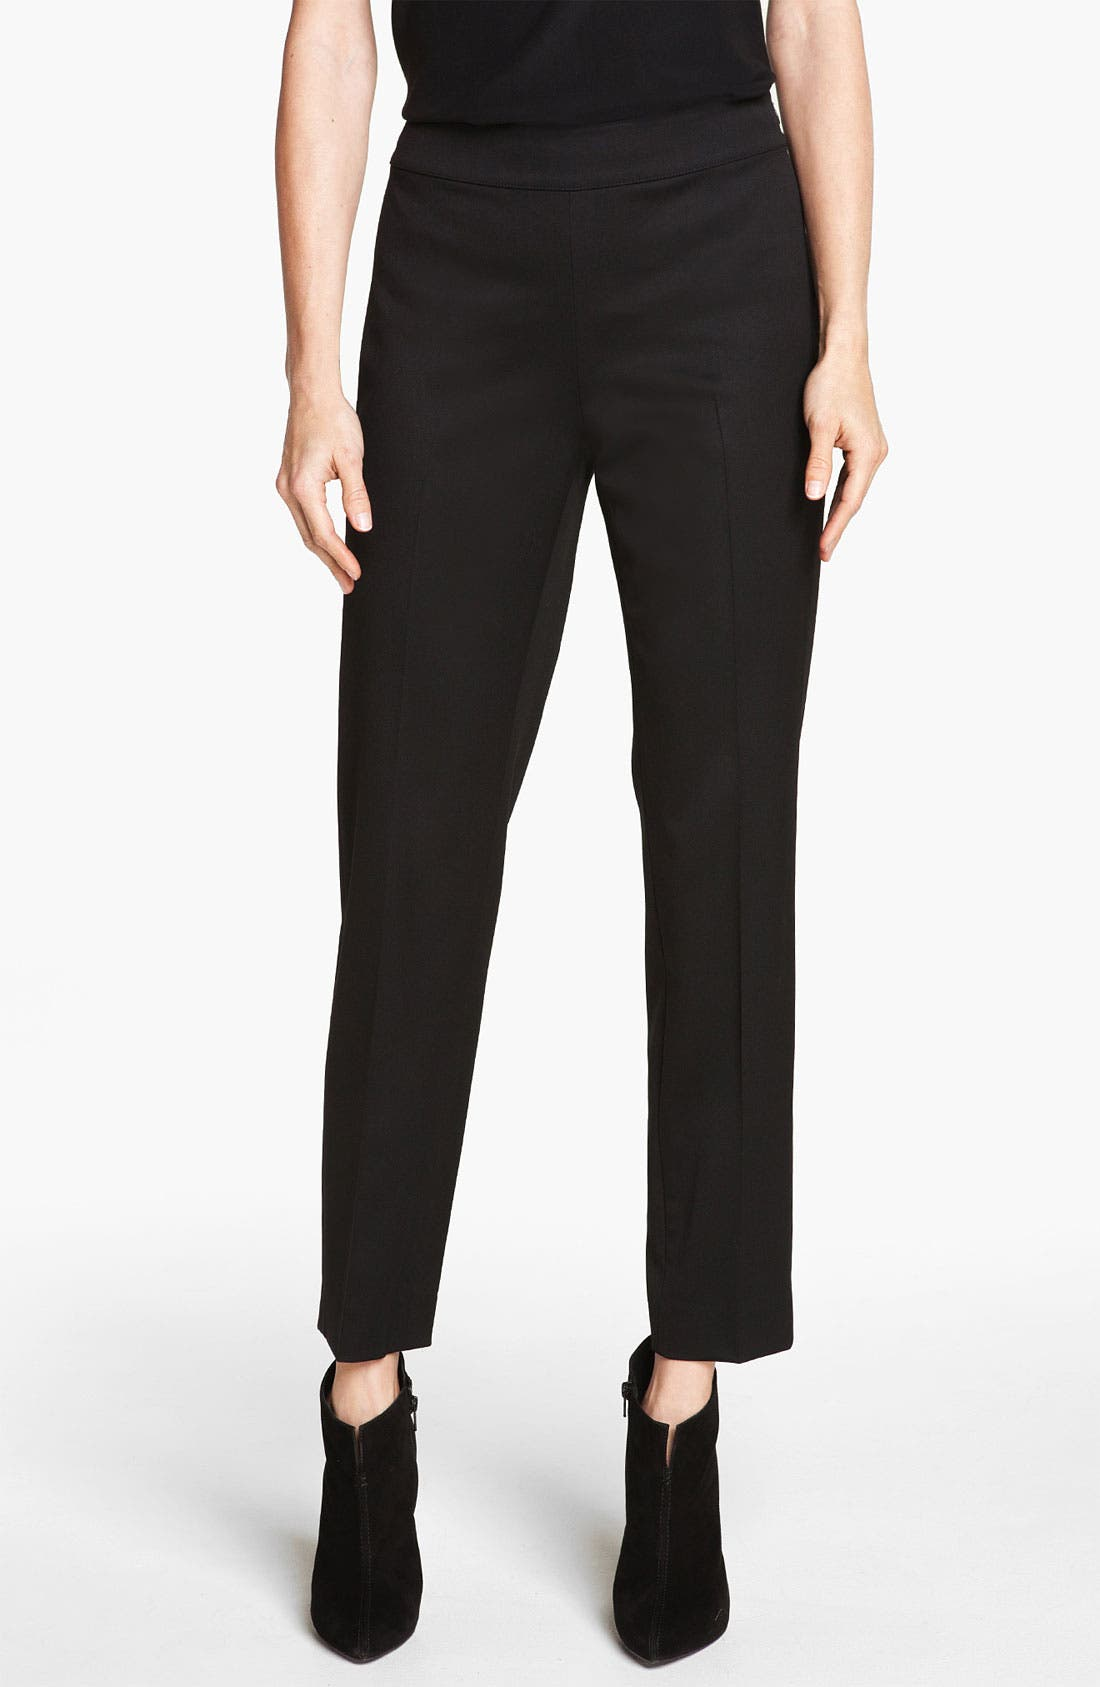 Alternate Image 1 Selected - St. John Collection 'Emma' Stretch Venetian Wool Crop Pants